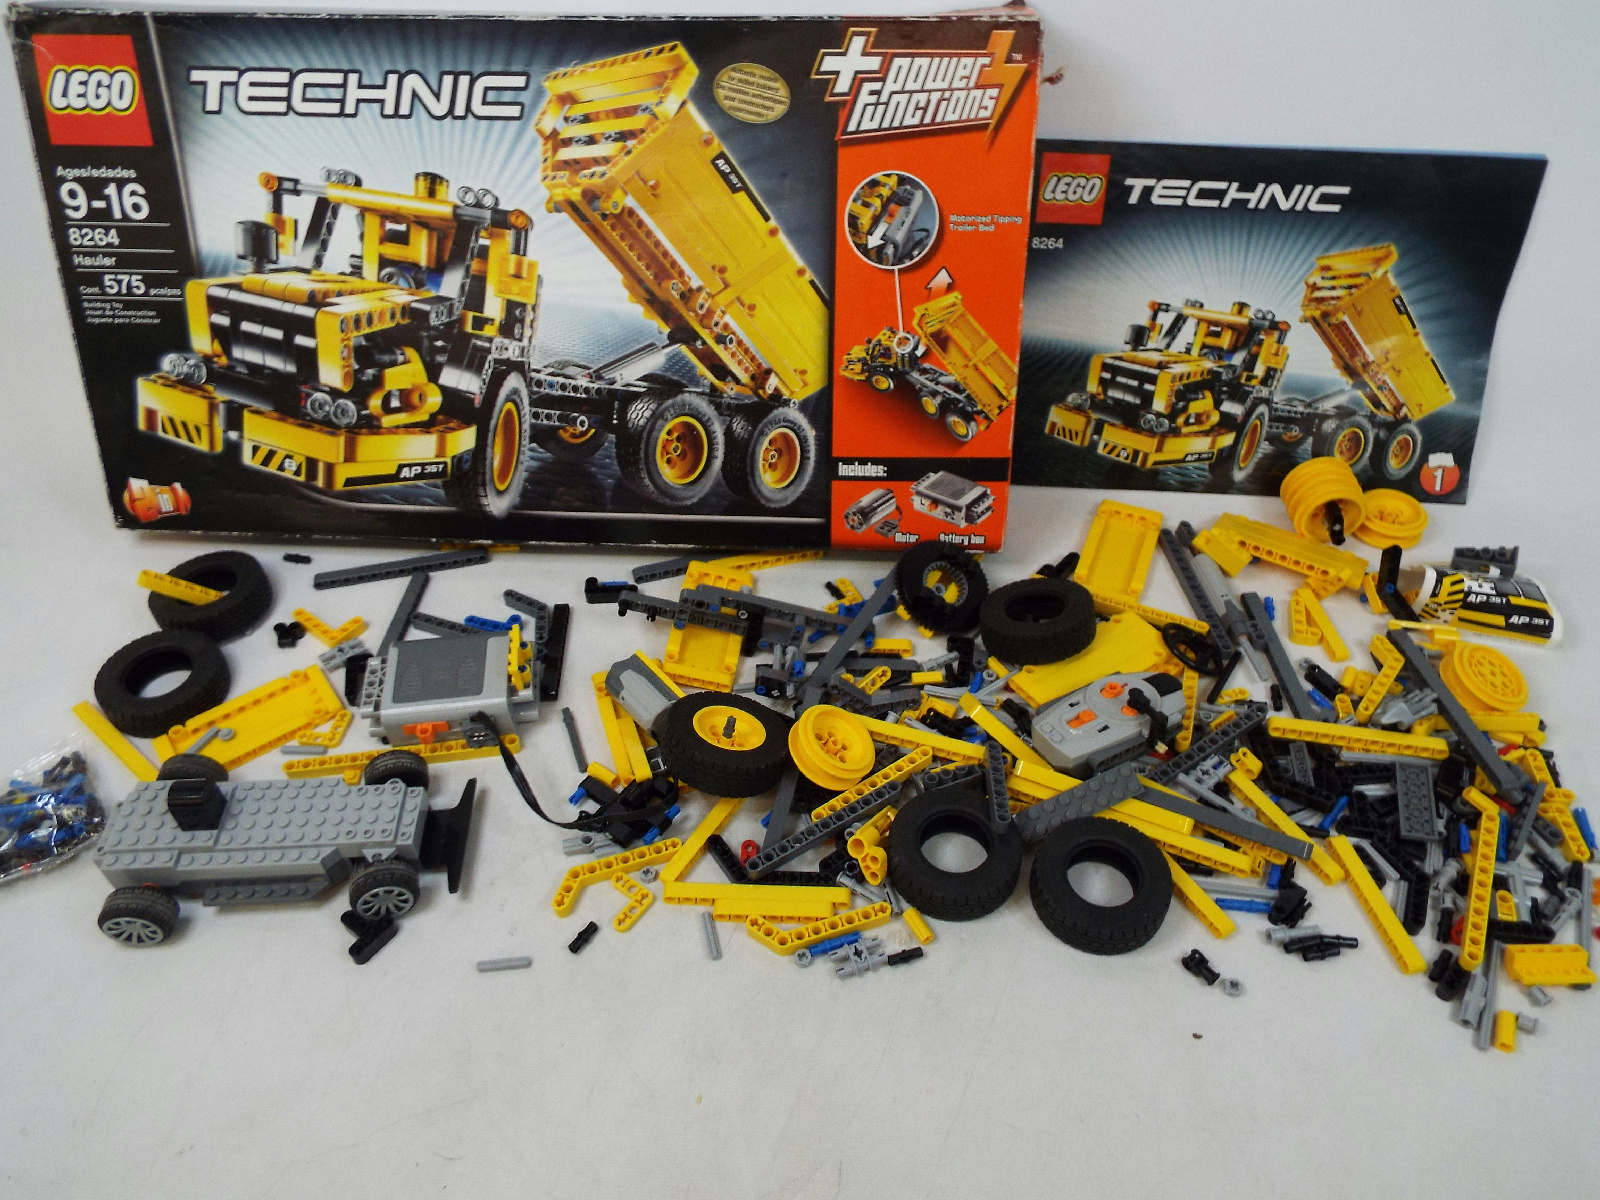 lego technic power functions lot 8264 hauler motor remote control car chassis. Black Bedroom Furniture Sets. Home Design Ideas